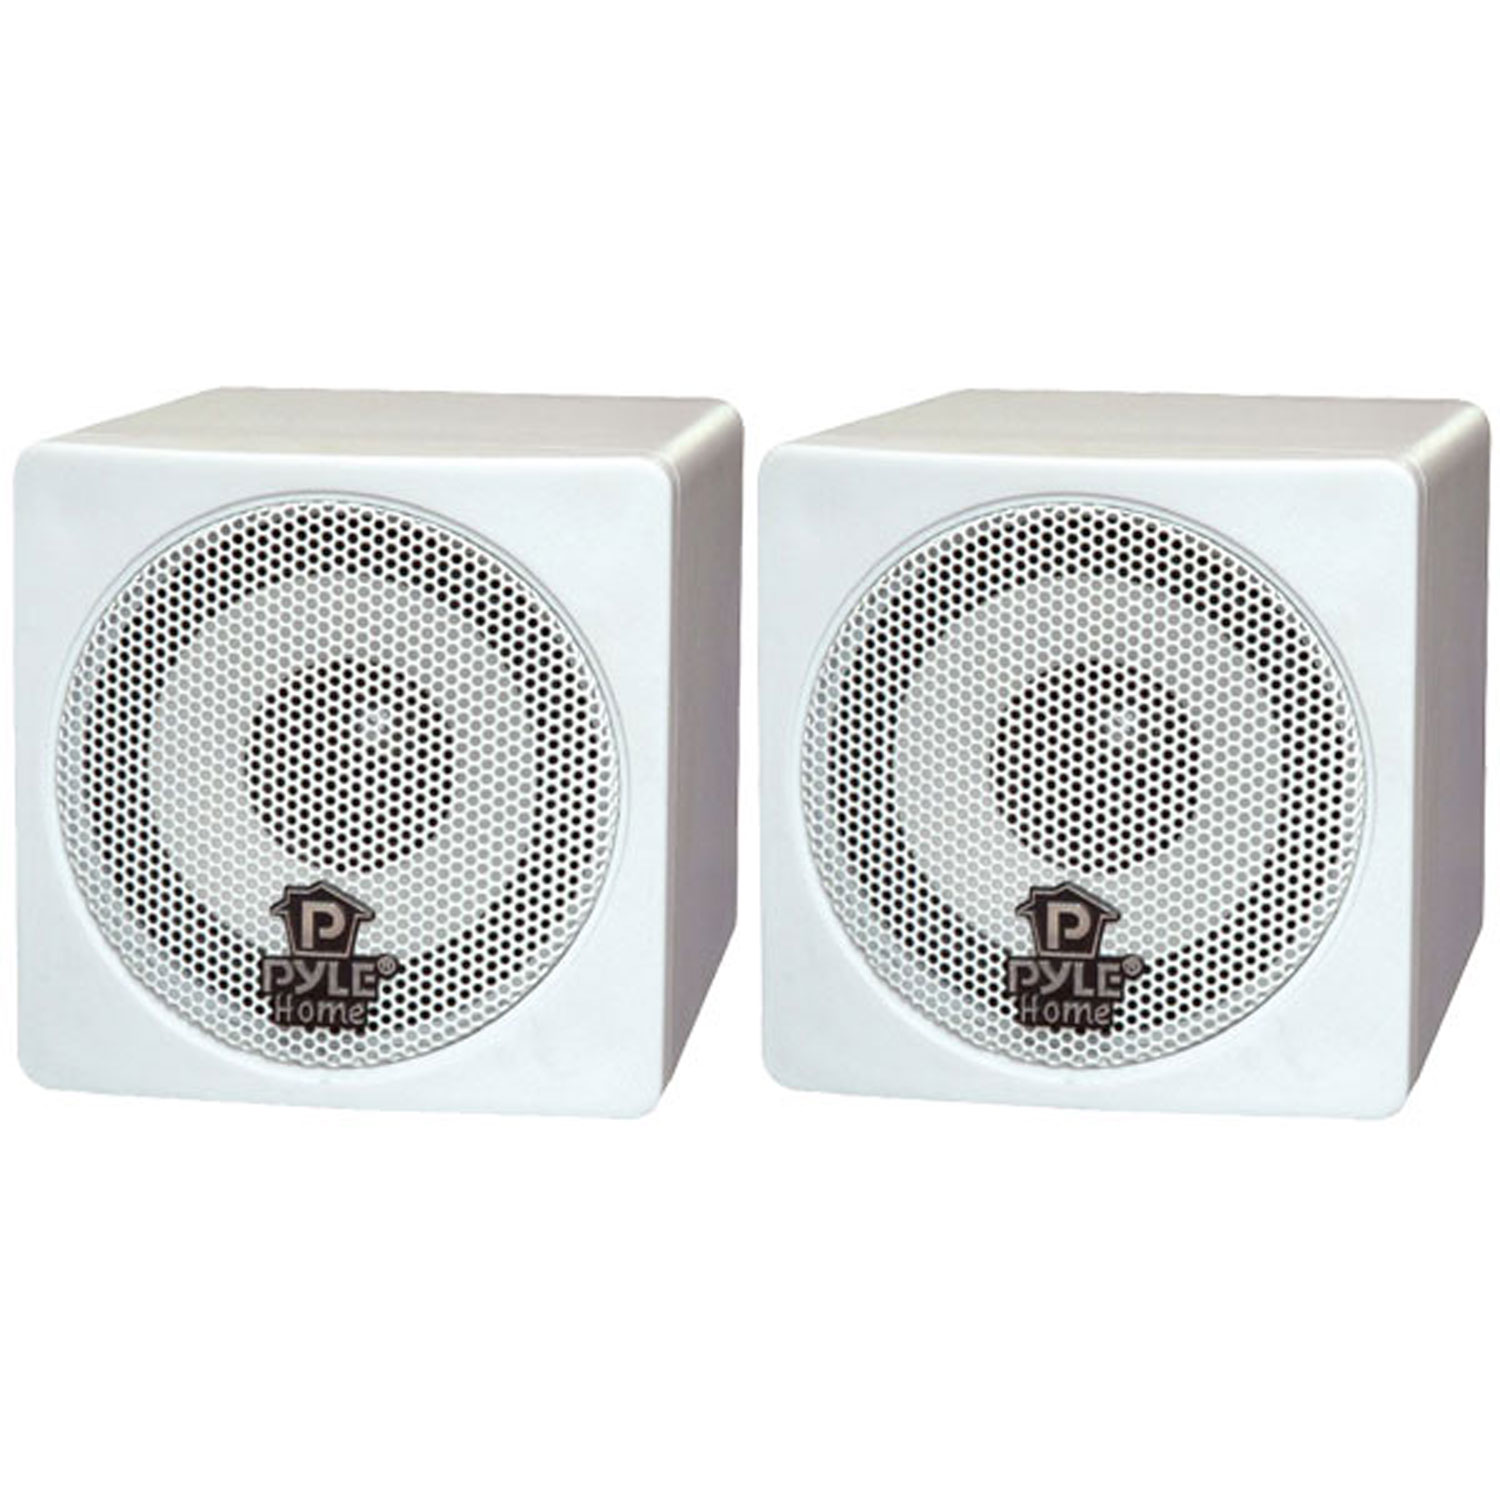 "Pyle 3"" 100 Watt White Mini Cube Bookshelf Speaker In White (Pair) by Pyle"